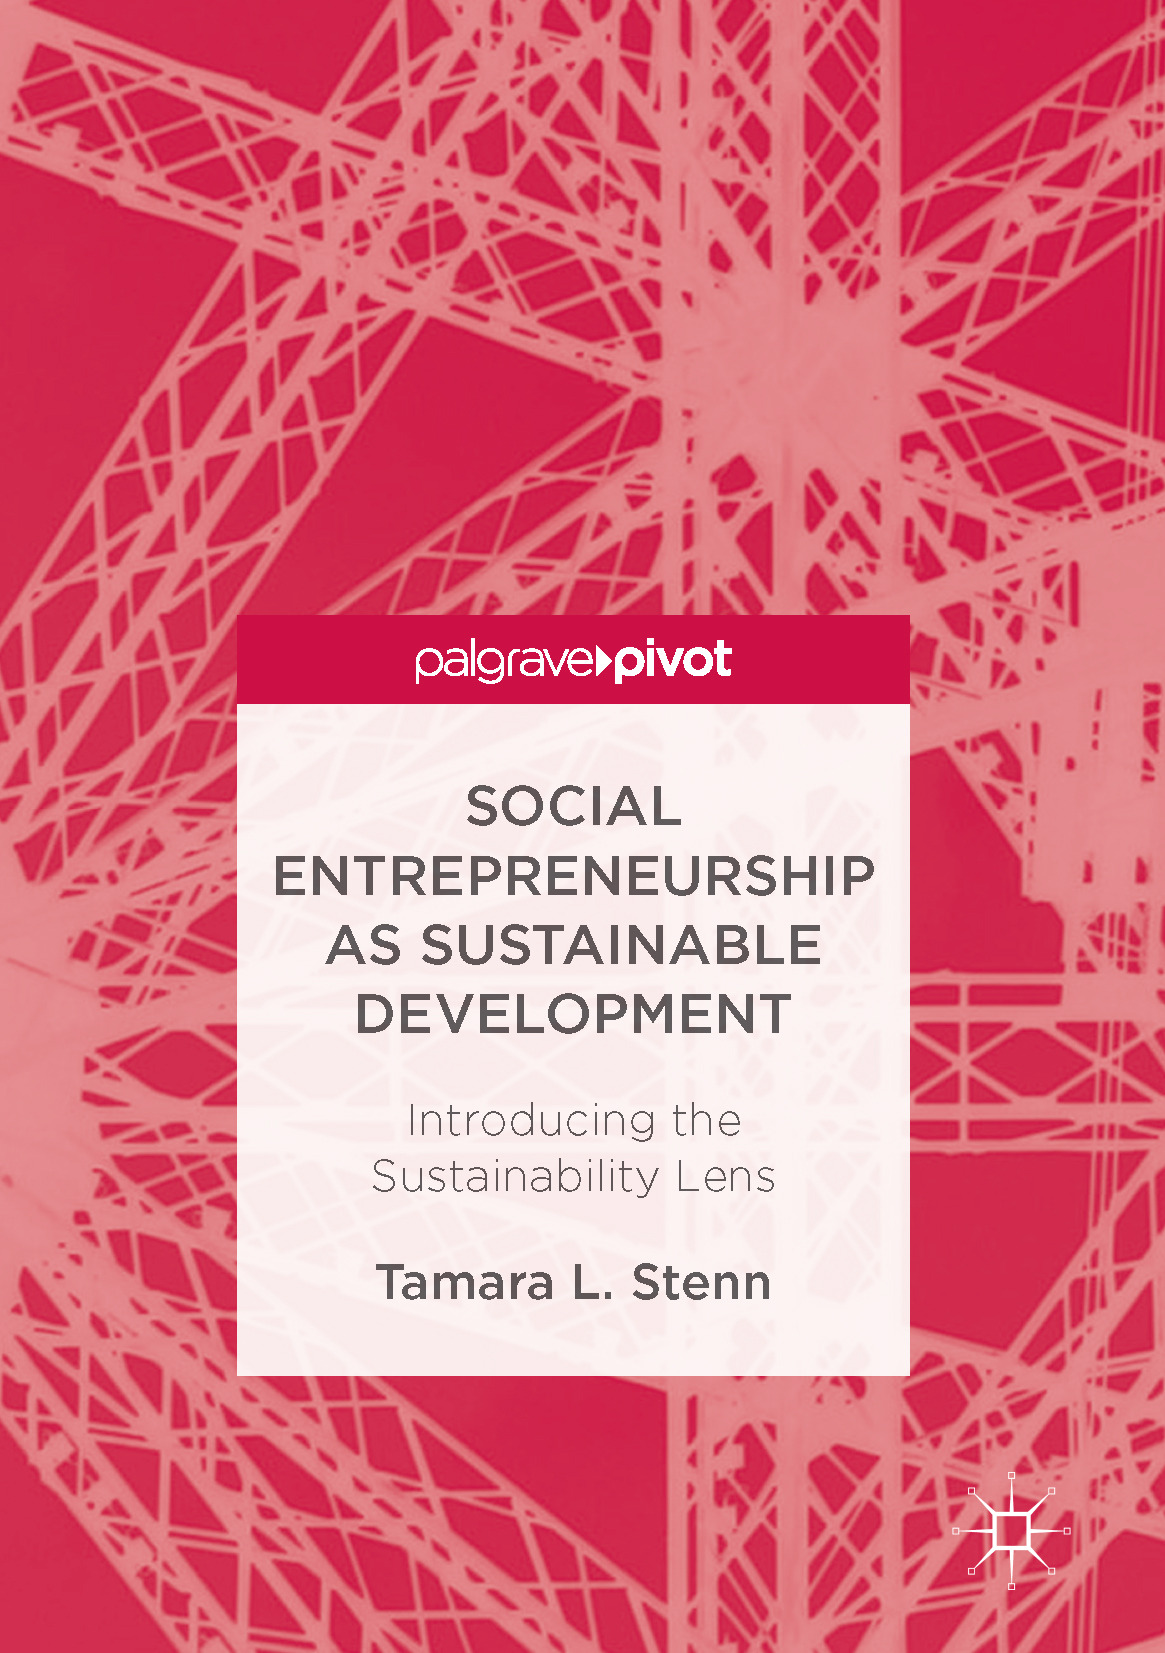 Stenn, Tamara L. - Social Entrepreneurship as Sustainable Development, ebook